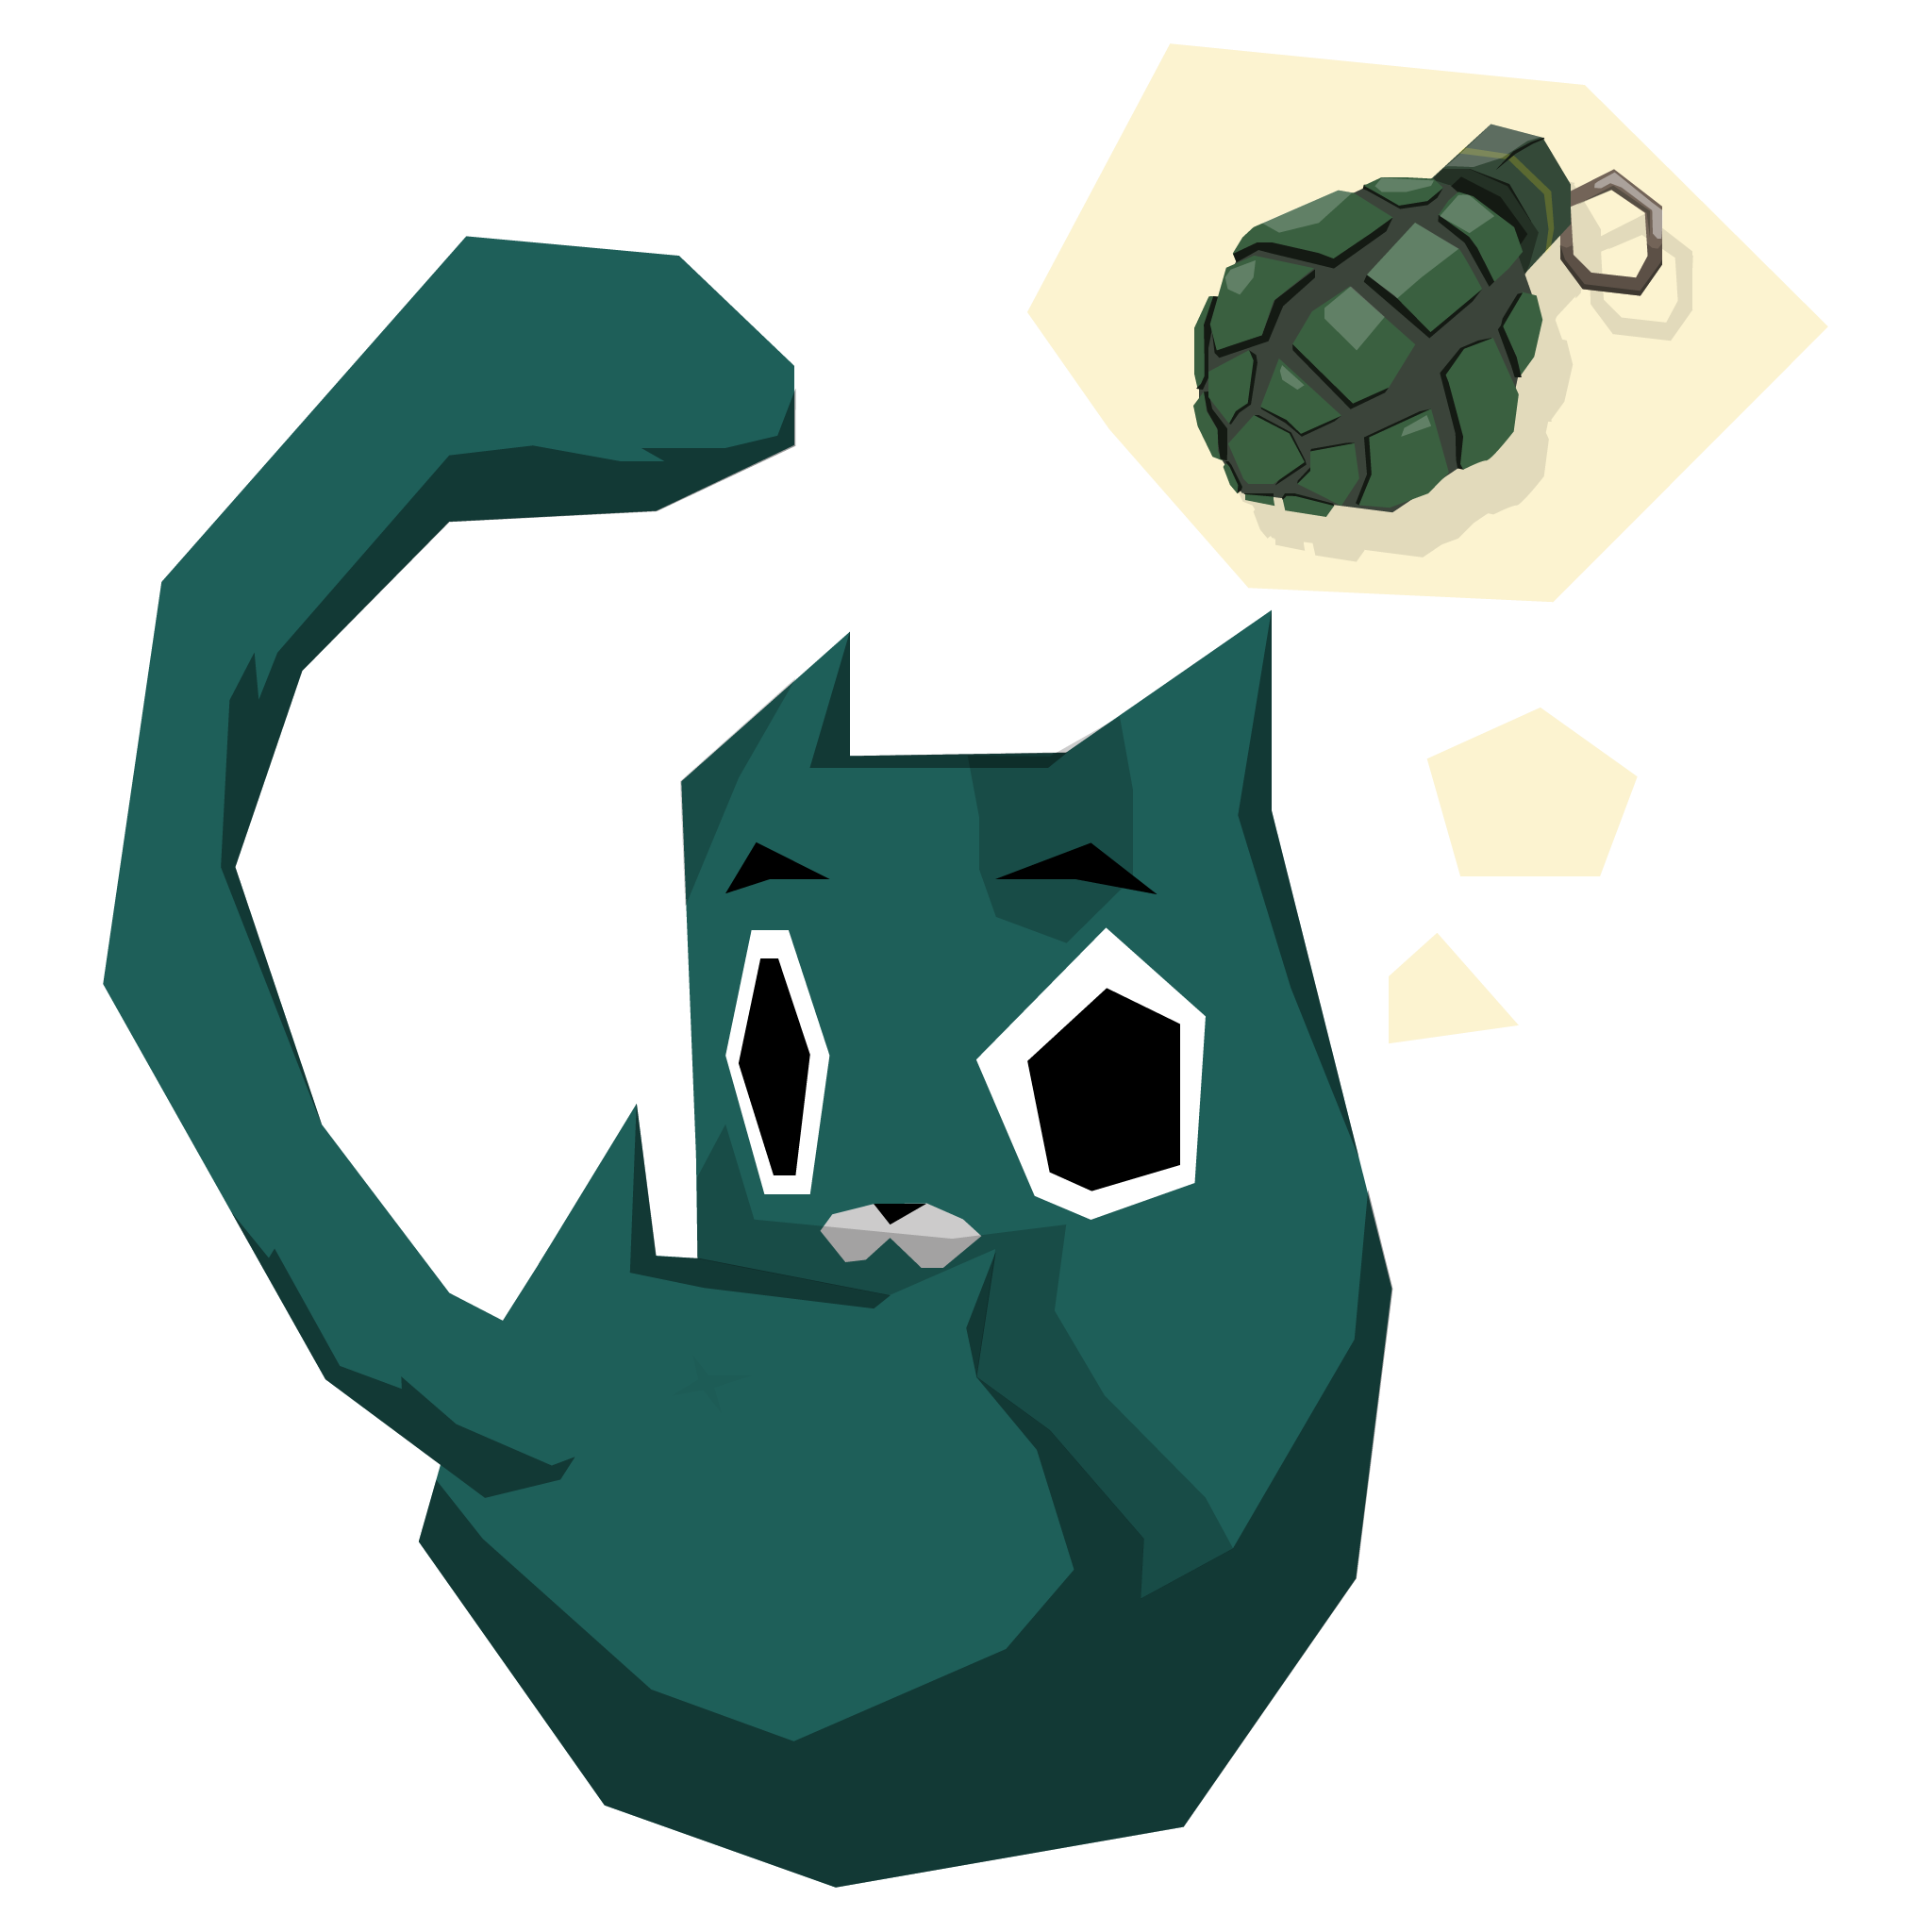 Silly_cute_Kitten_bomb-01.png